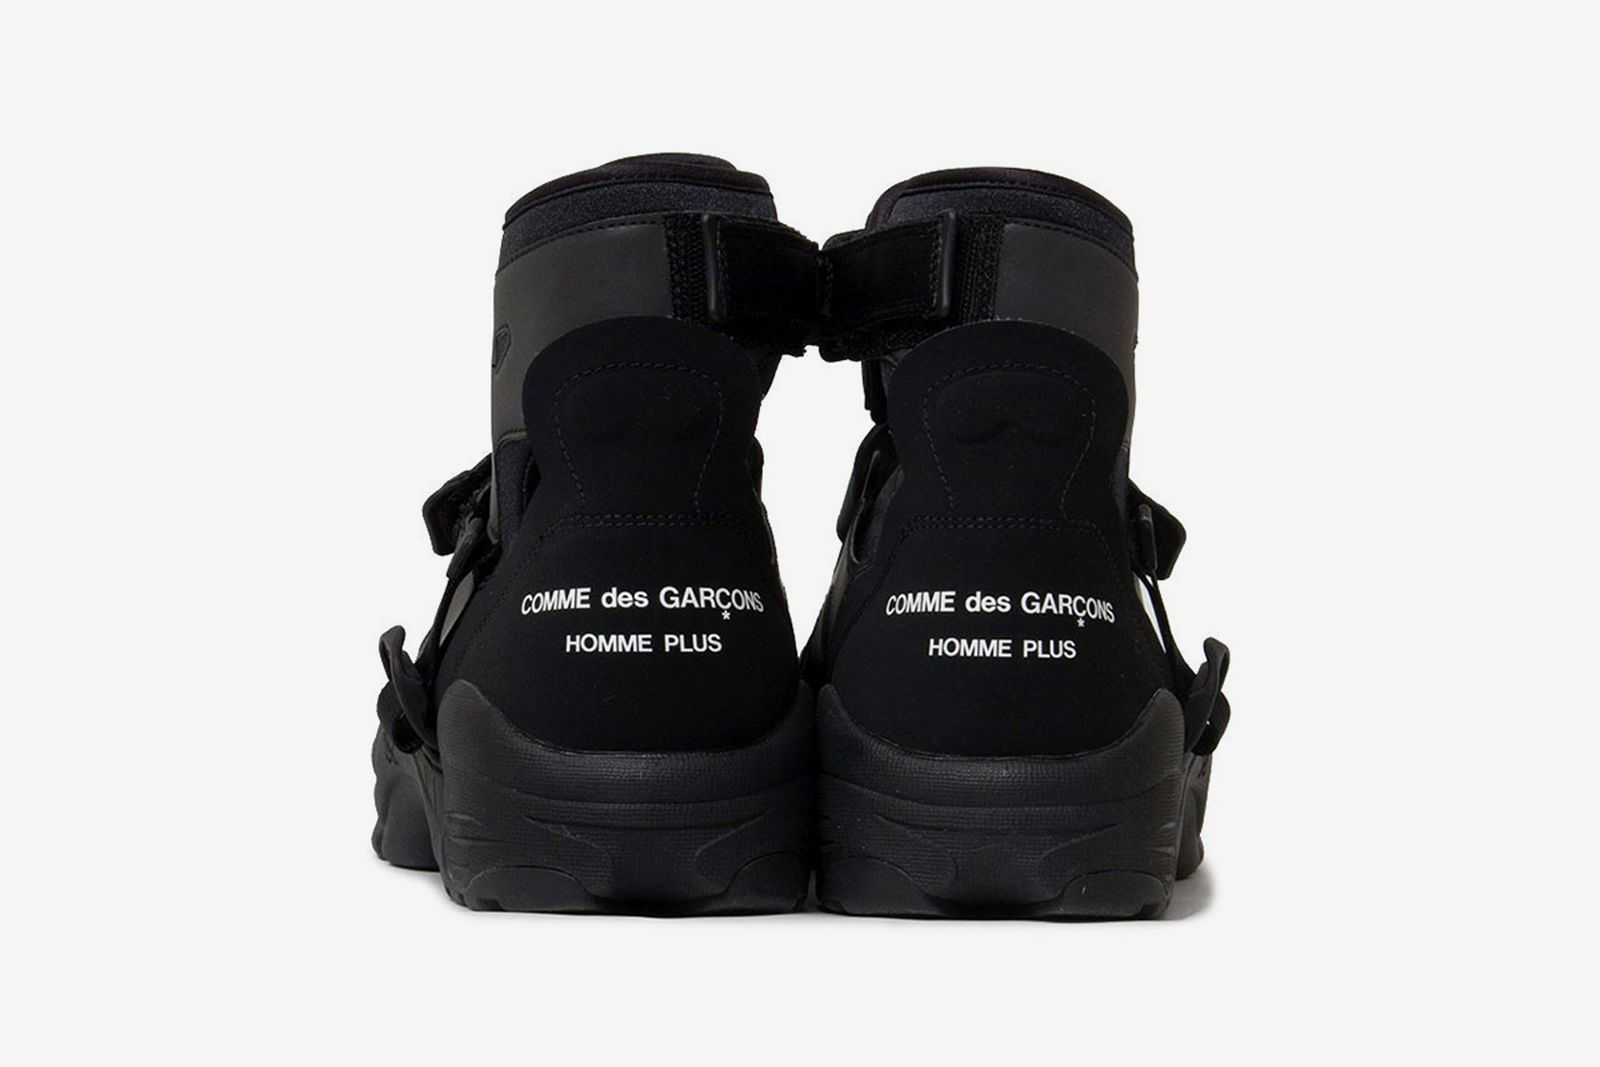 comme-des-garcons-homme-plus-nike-air-carnivore-release-date-price-04